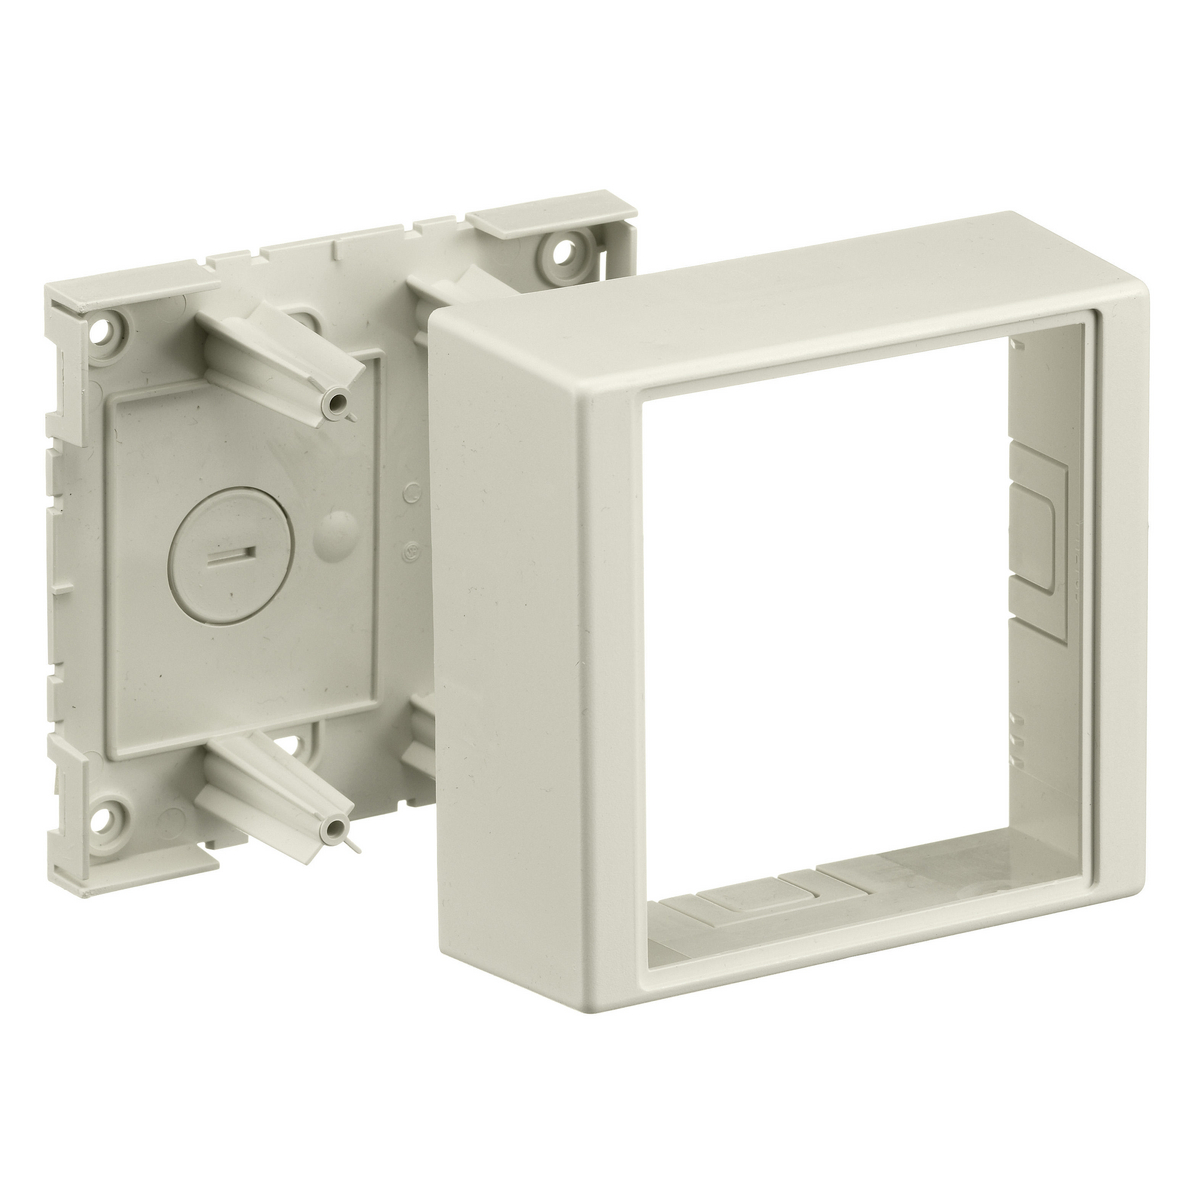 Hubbell PW1TGB WALLTRAK1 2-G BOX